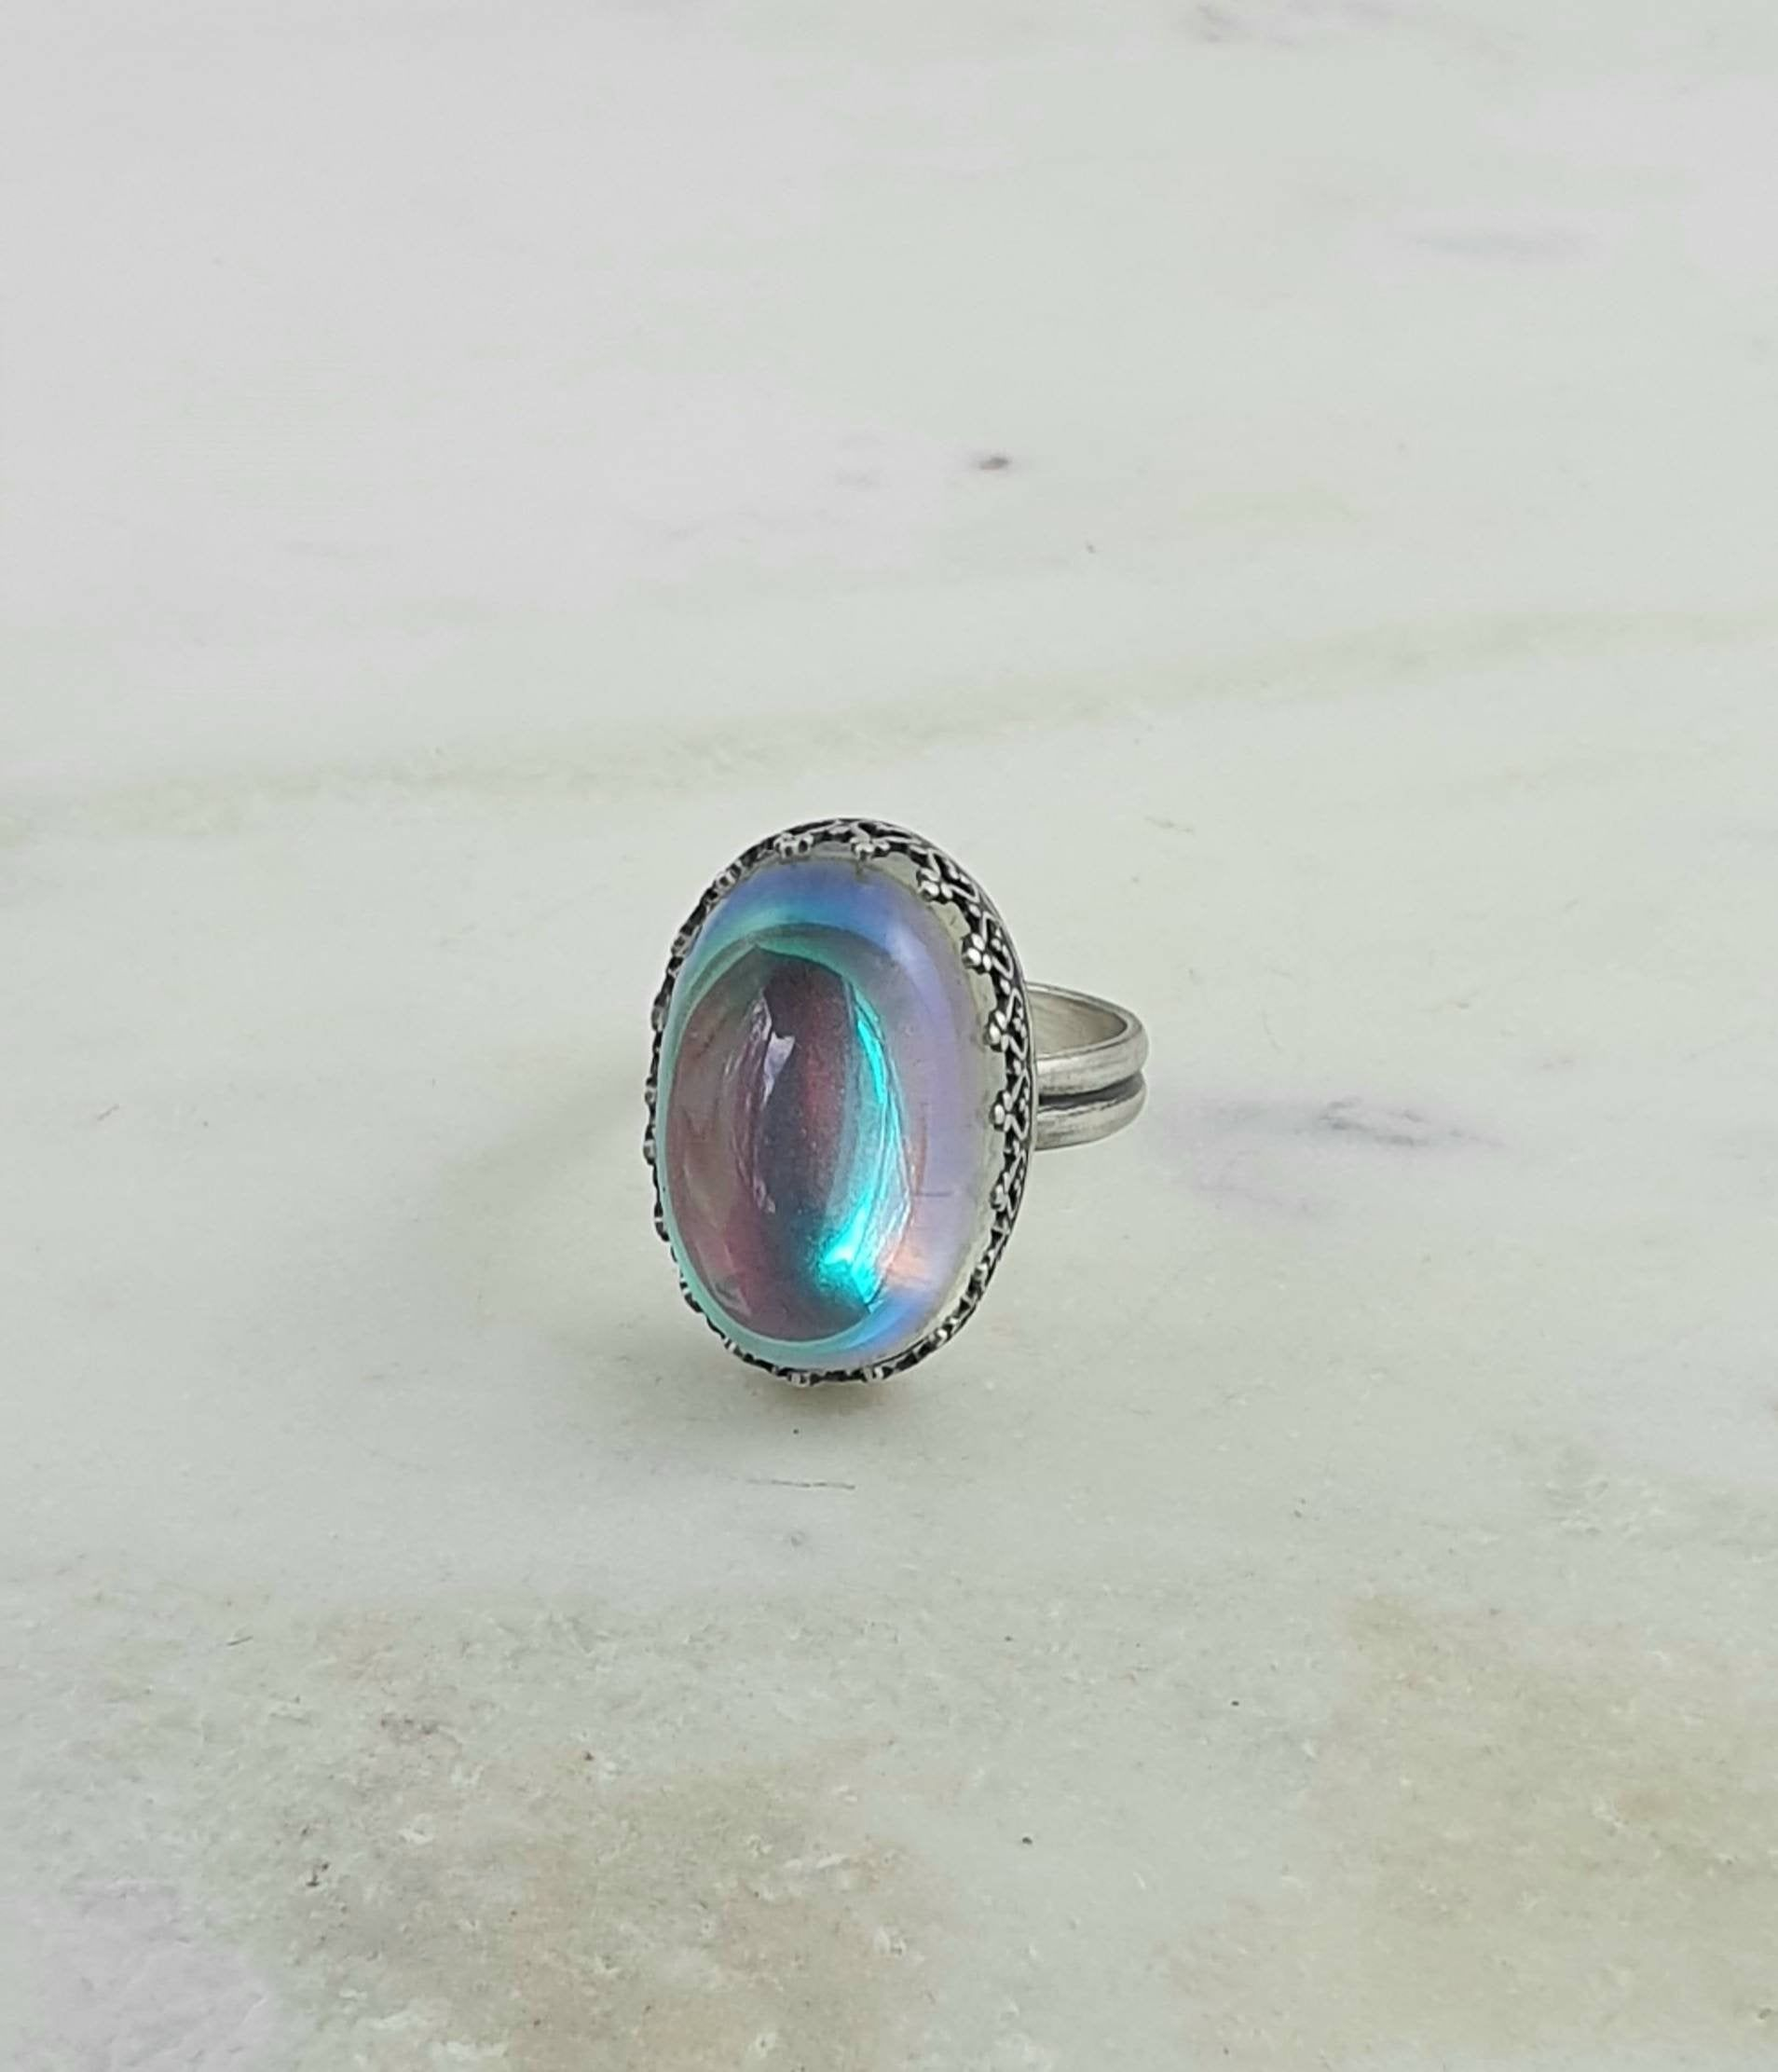 Gift Jewelry Golden Sunstone Handmade Jewellry 925 Sterling Silver Plated 5 Grams Ring Size 8.5 US